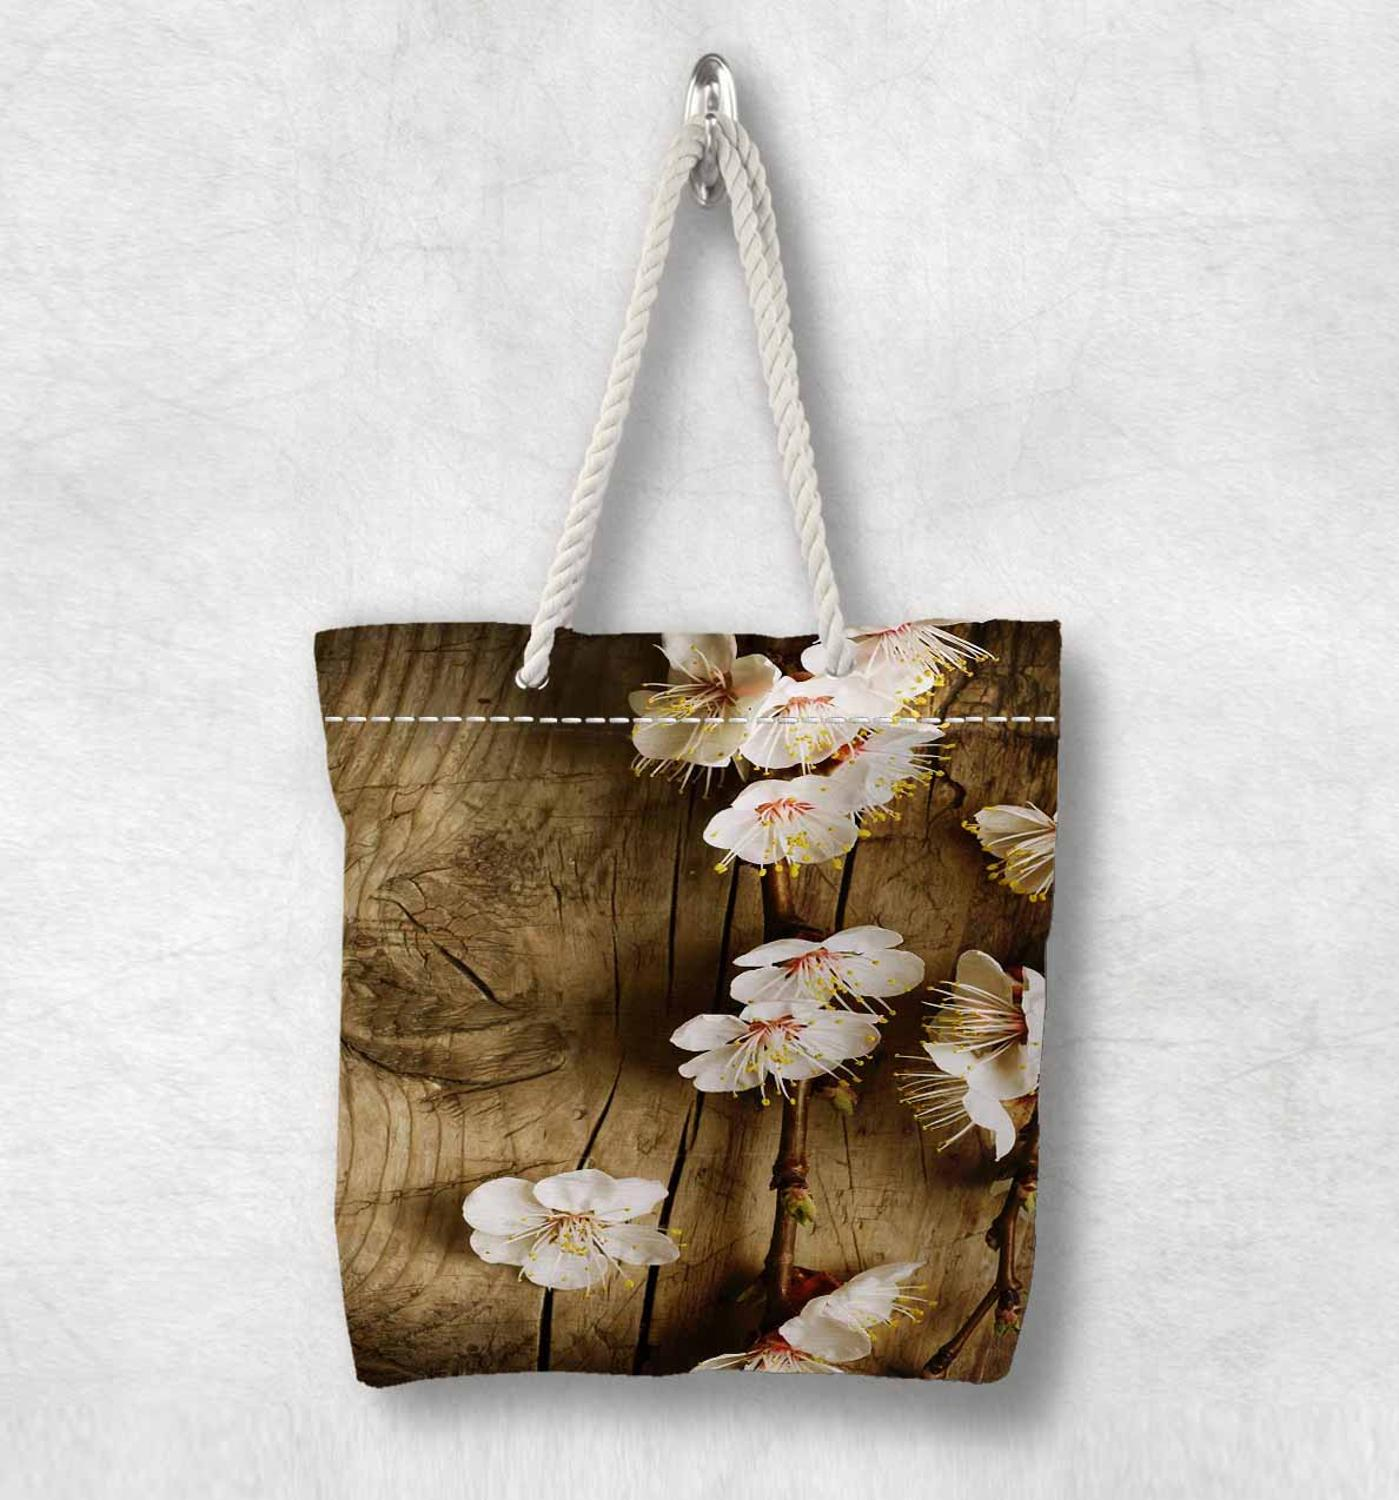 Else Brown Wood On White Flowers Floral New Fashion White Rope Handle Canvas Bag Cotton Canvas Zippered Tote Bag Shoulder Bag